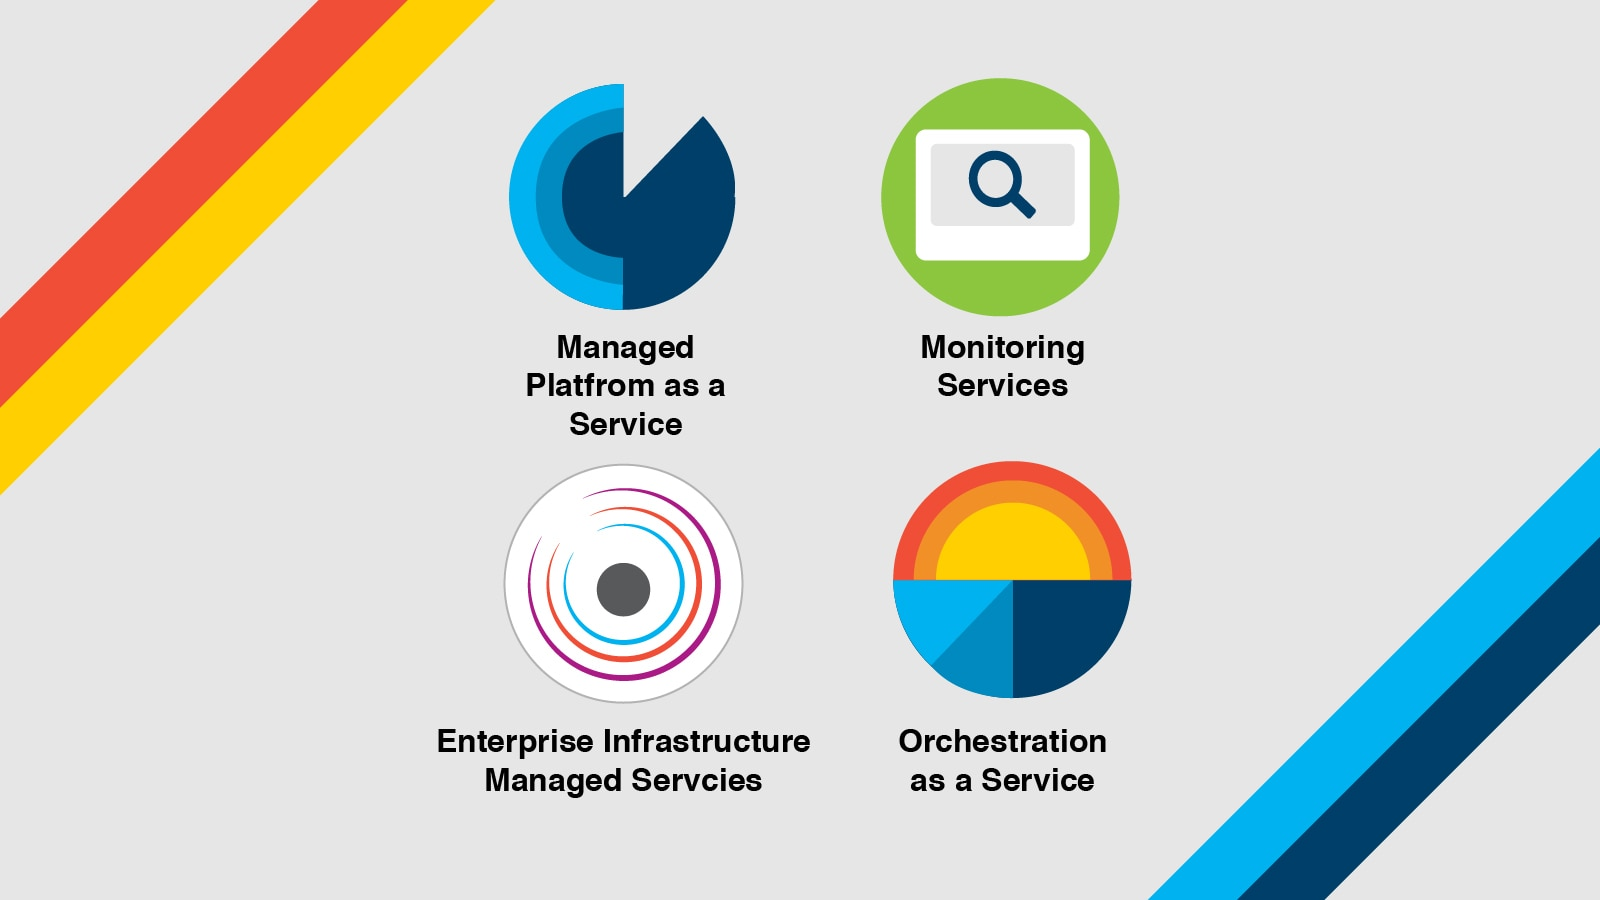 MPaaS, Monitoring Services, Enterprise Infrastructure Management, OaaS